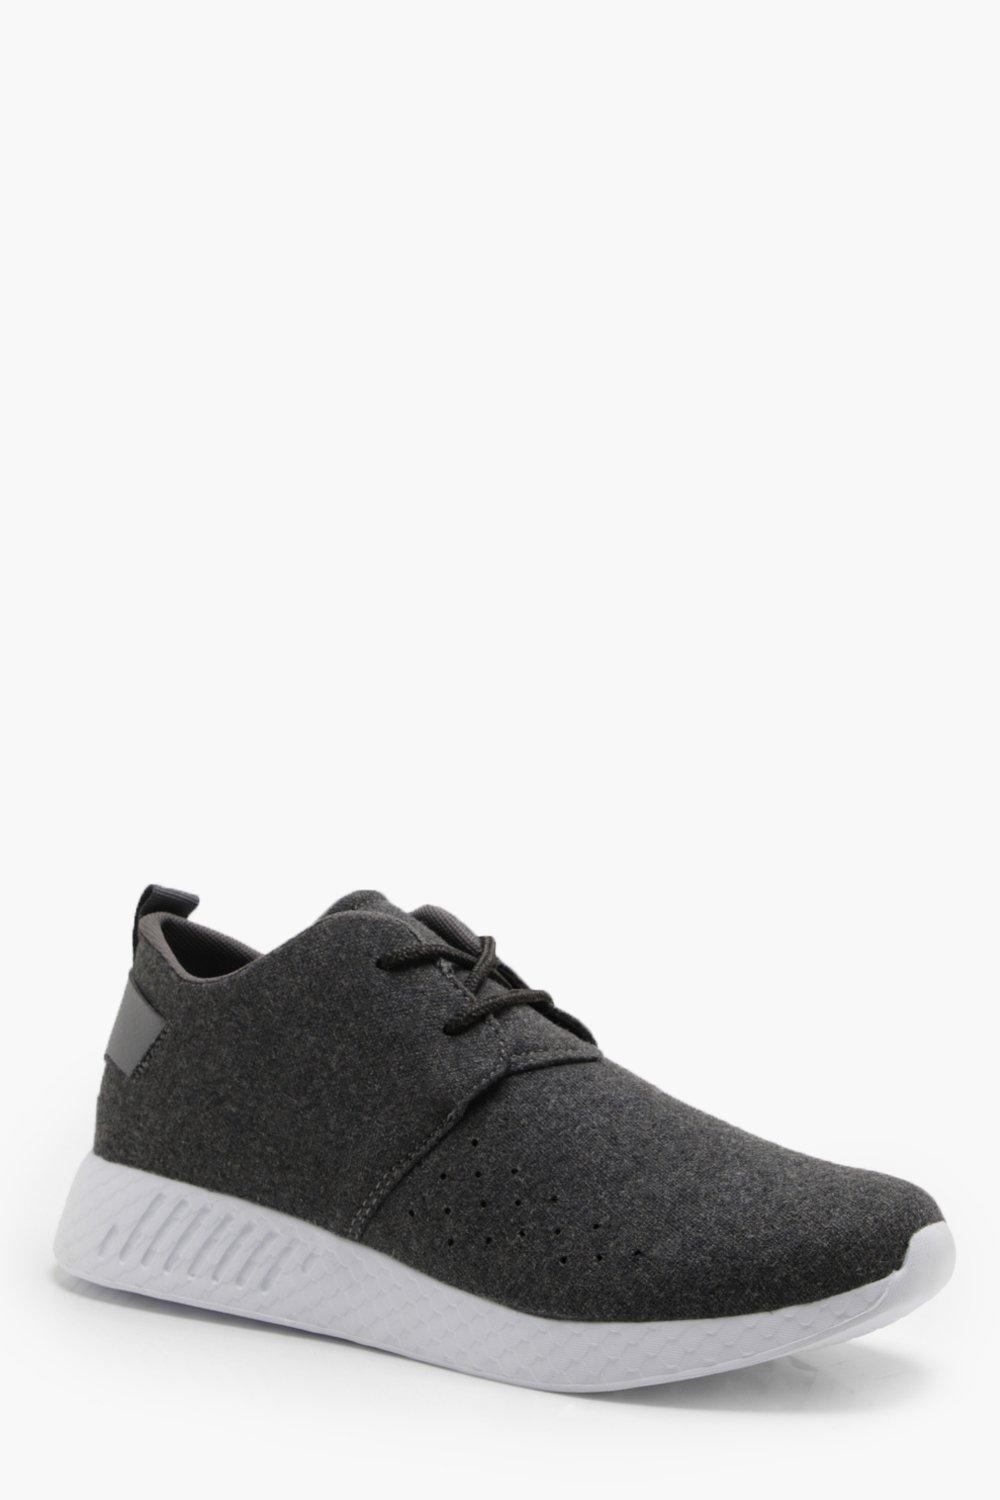 boohooMAN grey Wool Look Lace Up Trainer